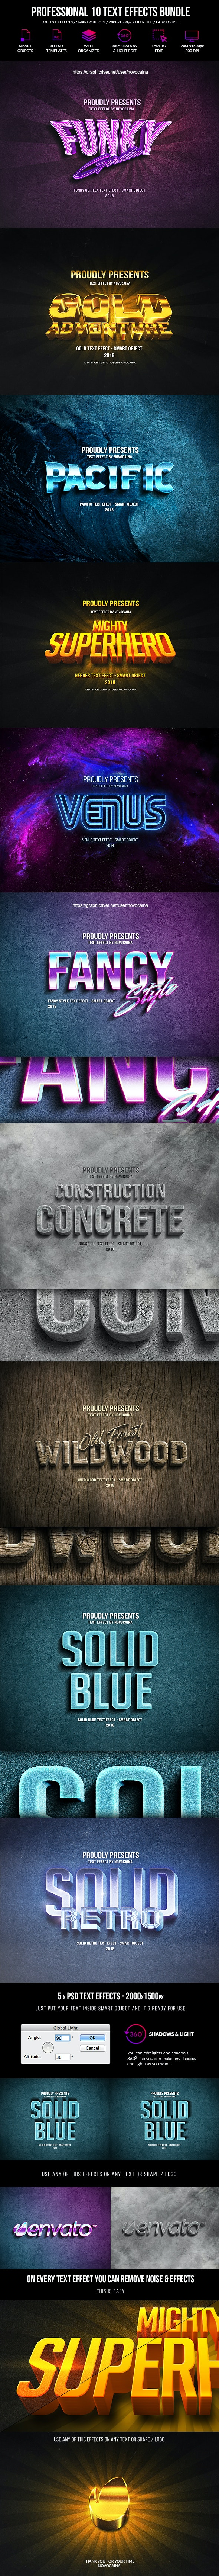 Professional 10 Text Effects Bundle - Text Effects Actions